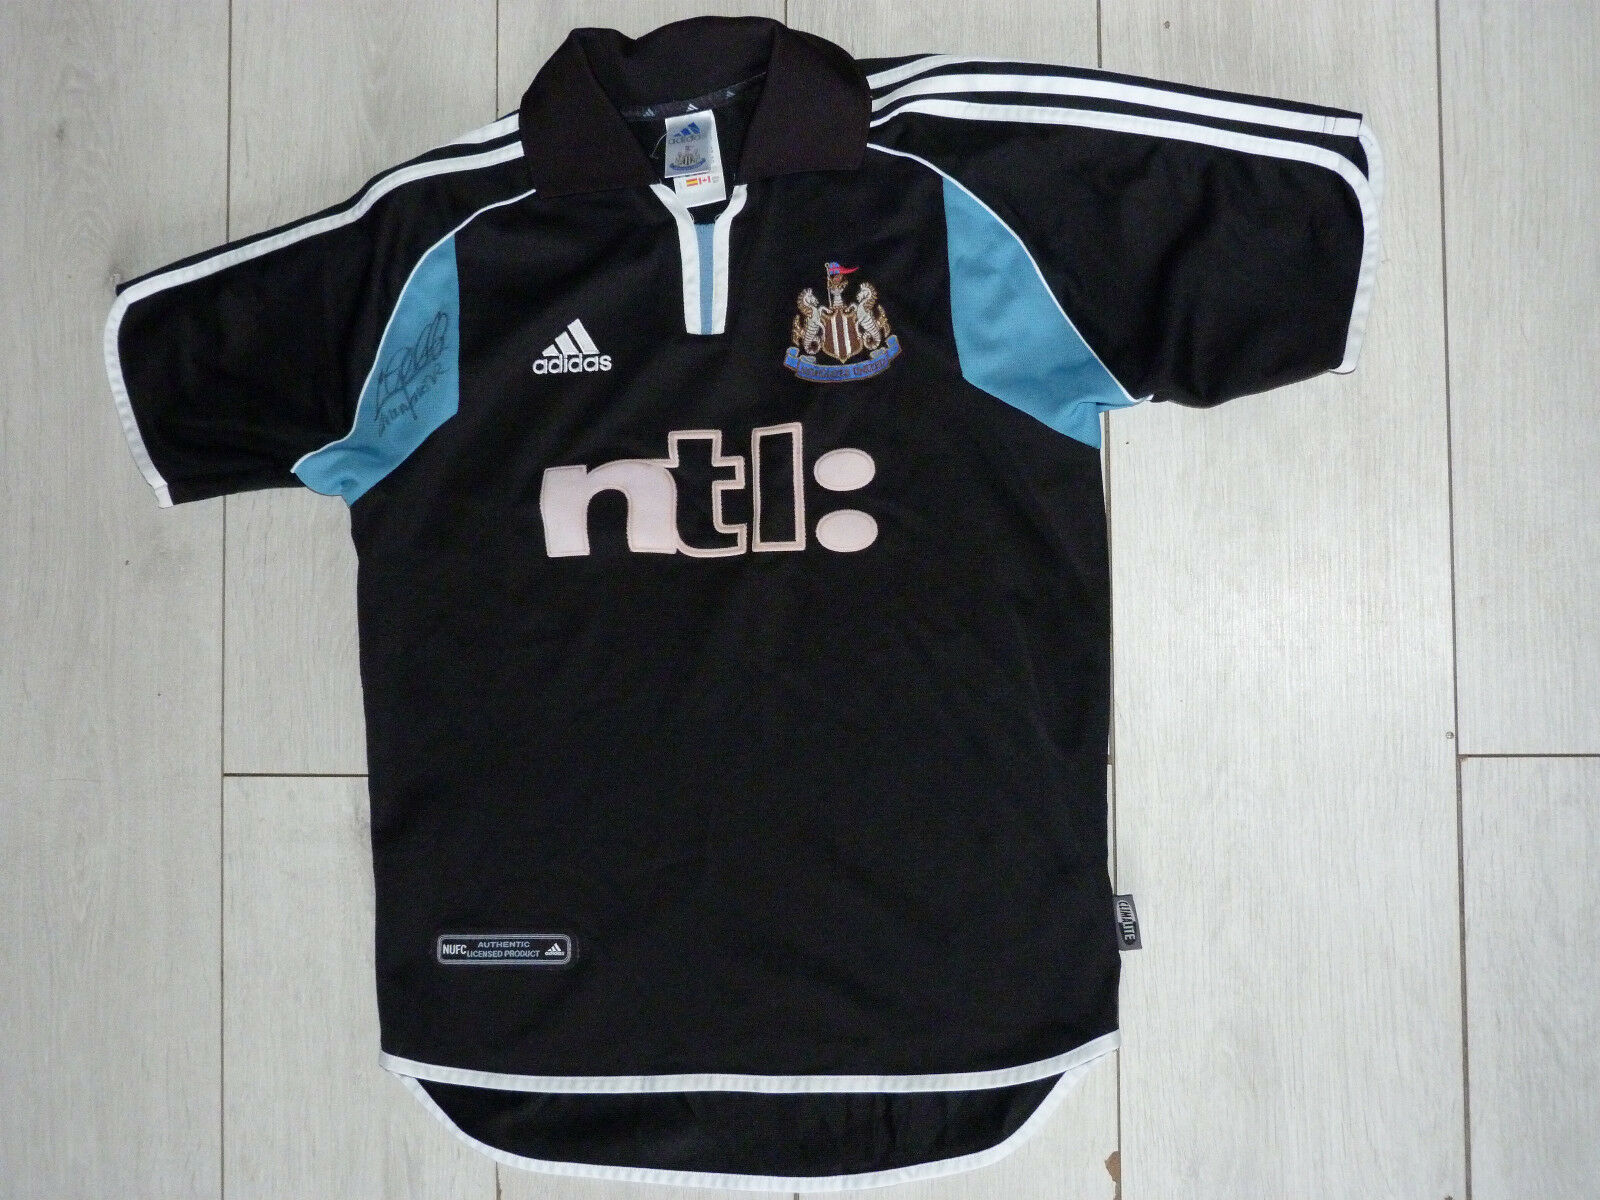 Maillot signé jersey NEWCASTLE UNITED FC signed KEVIN GALLACHER ultras foot